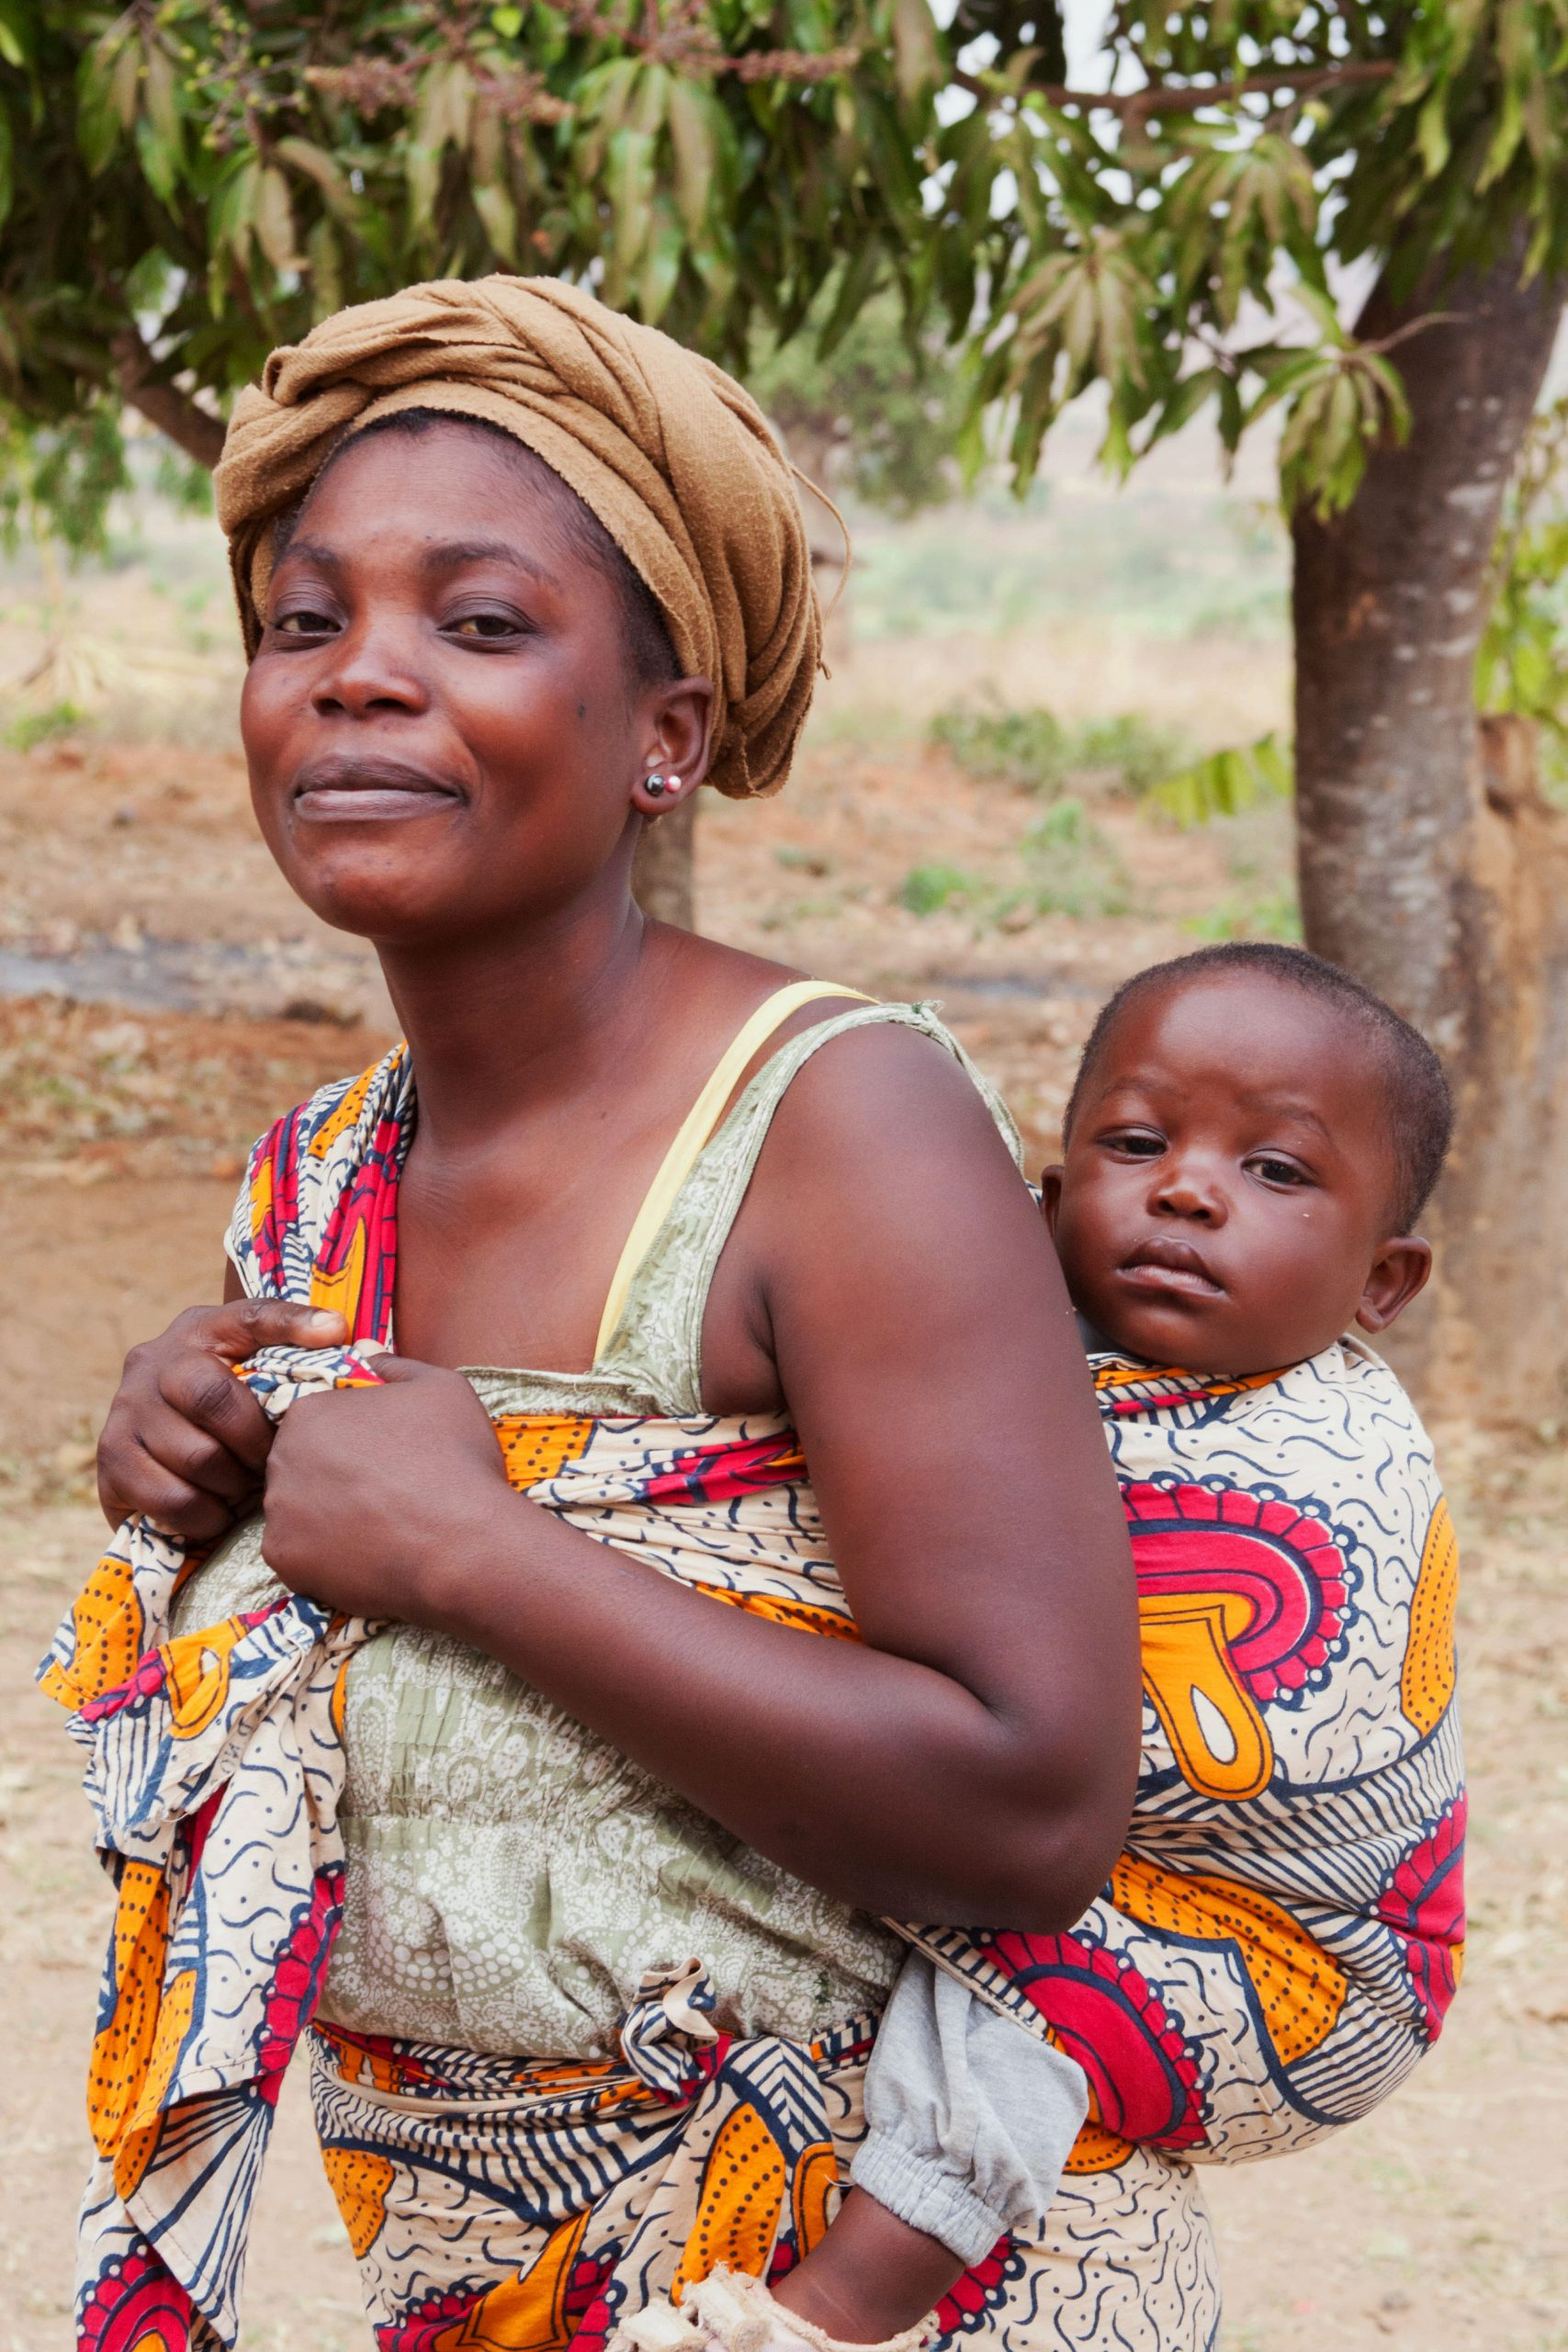 woman with baby carried on back